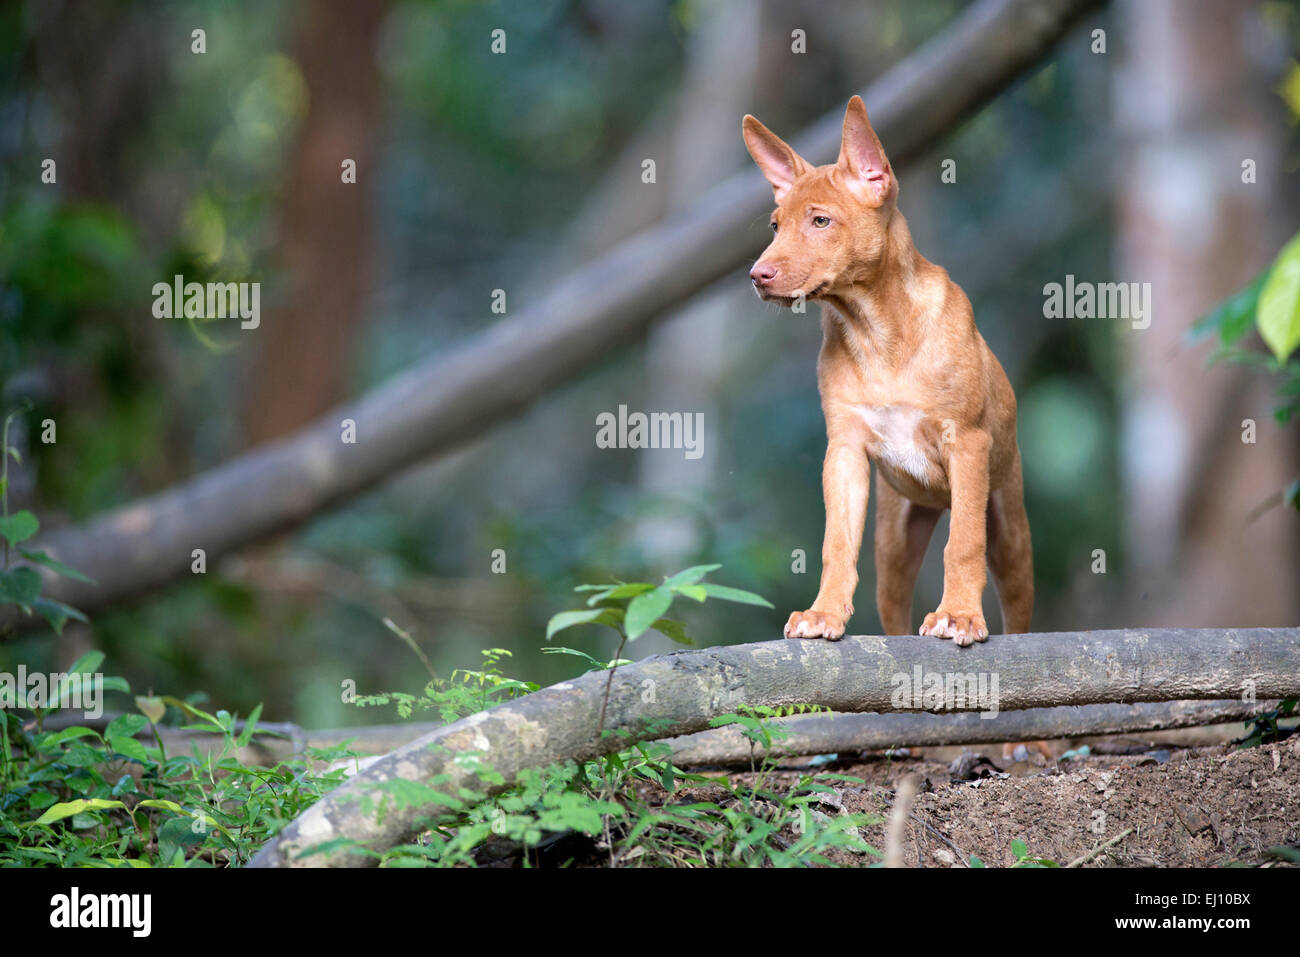 Dog of Thailand, Puppy, mammal, canis familiaris, young, dog, Thai Bankaew, - Stock Image